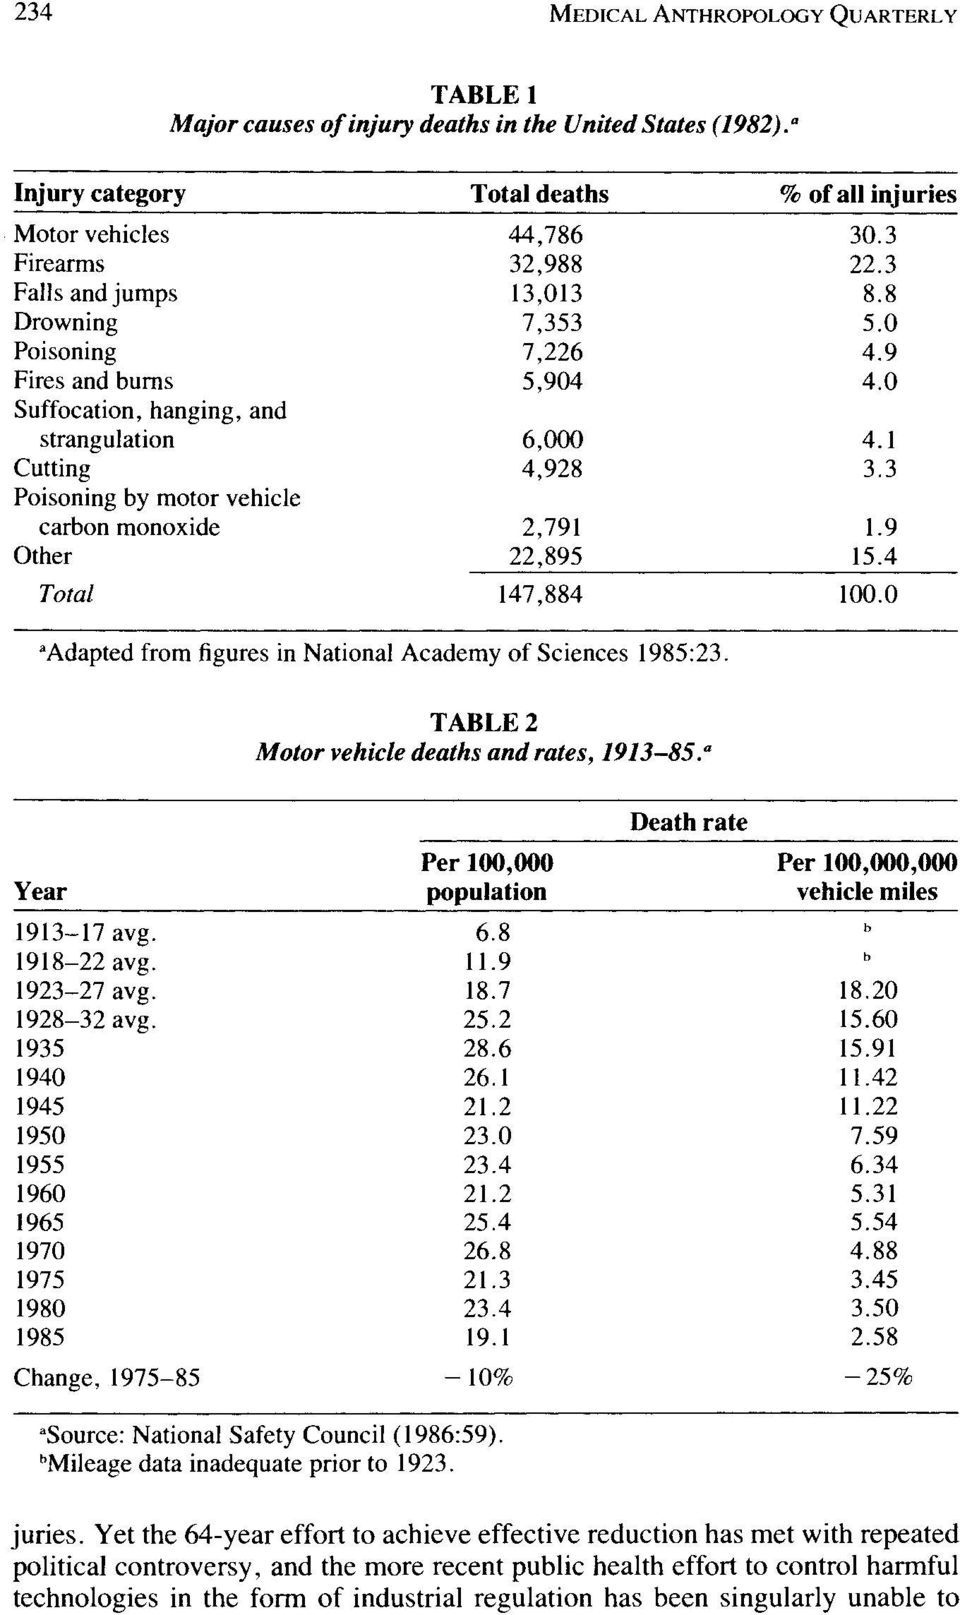 3 Poisoning by motor vehicle carbon monoxide 2,791 1.9 Other 22,895 15.4 Total 147,884 100.0 aadapted from figures in National Academy of Sciences 1985:23.